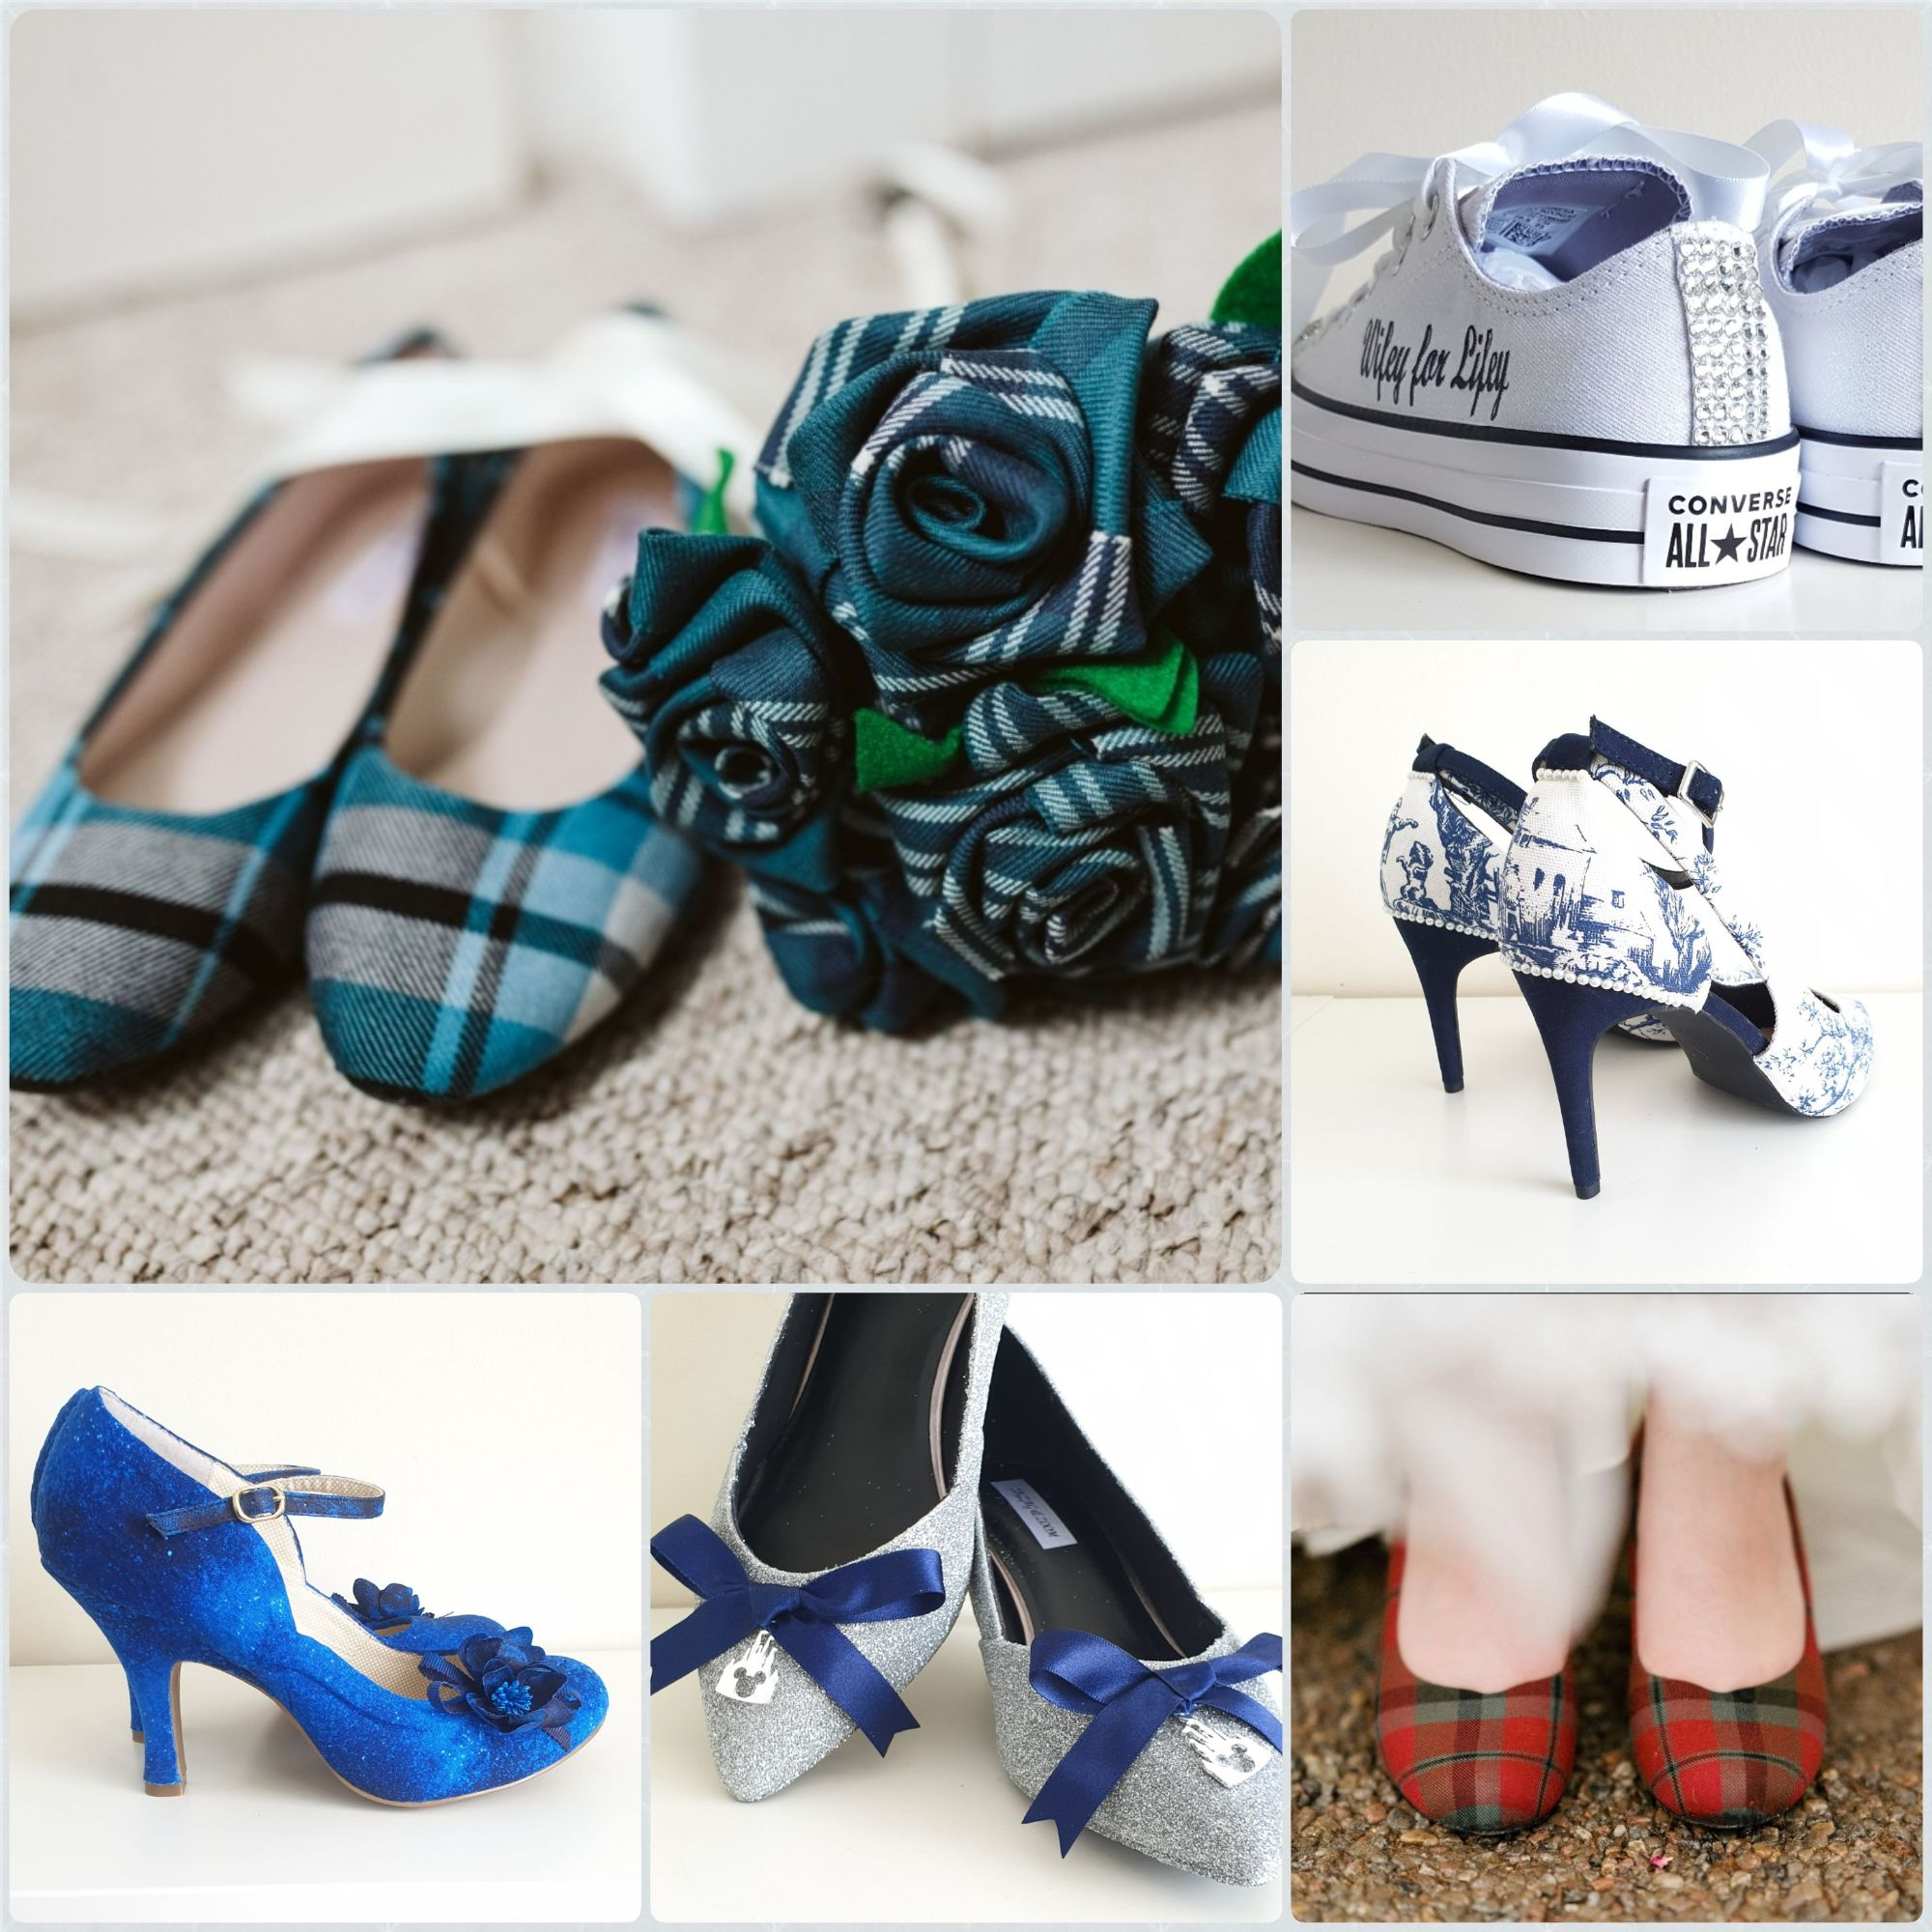 Wedding shoes, tartan shoes, disney converse, bespoke design shoes.